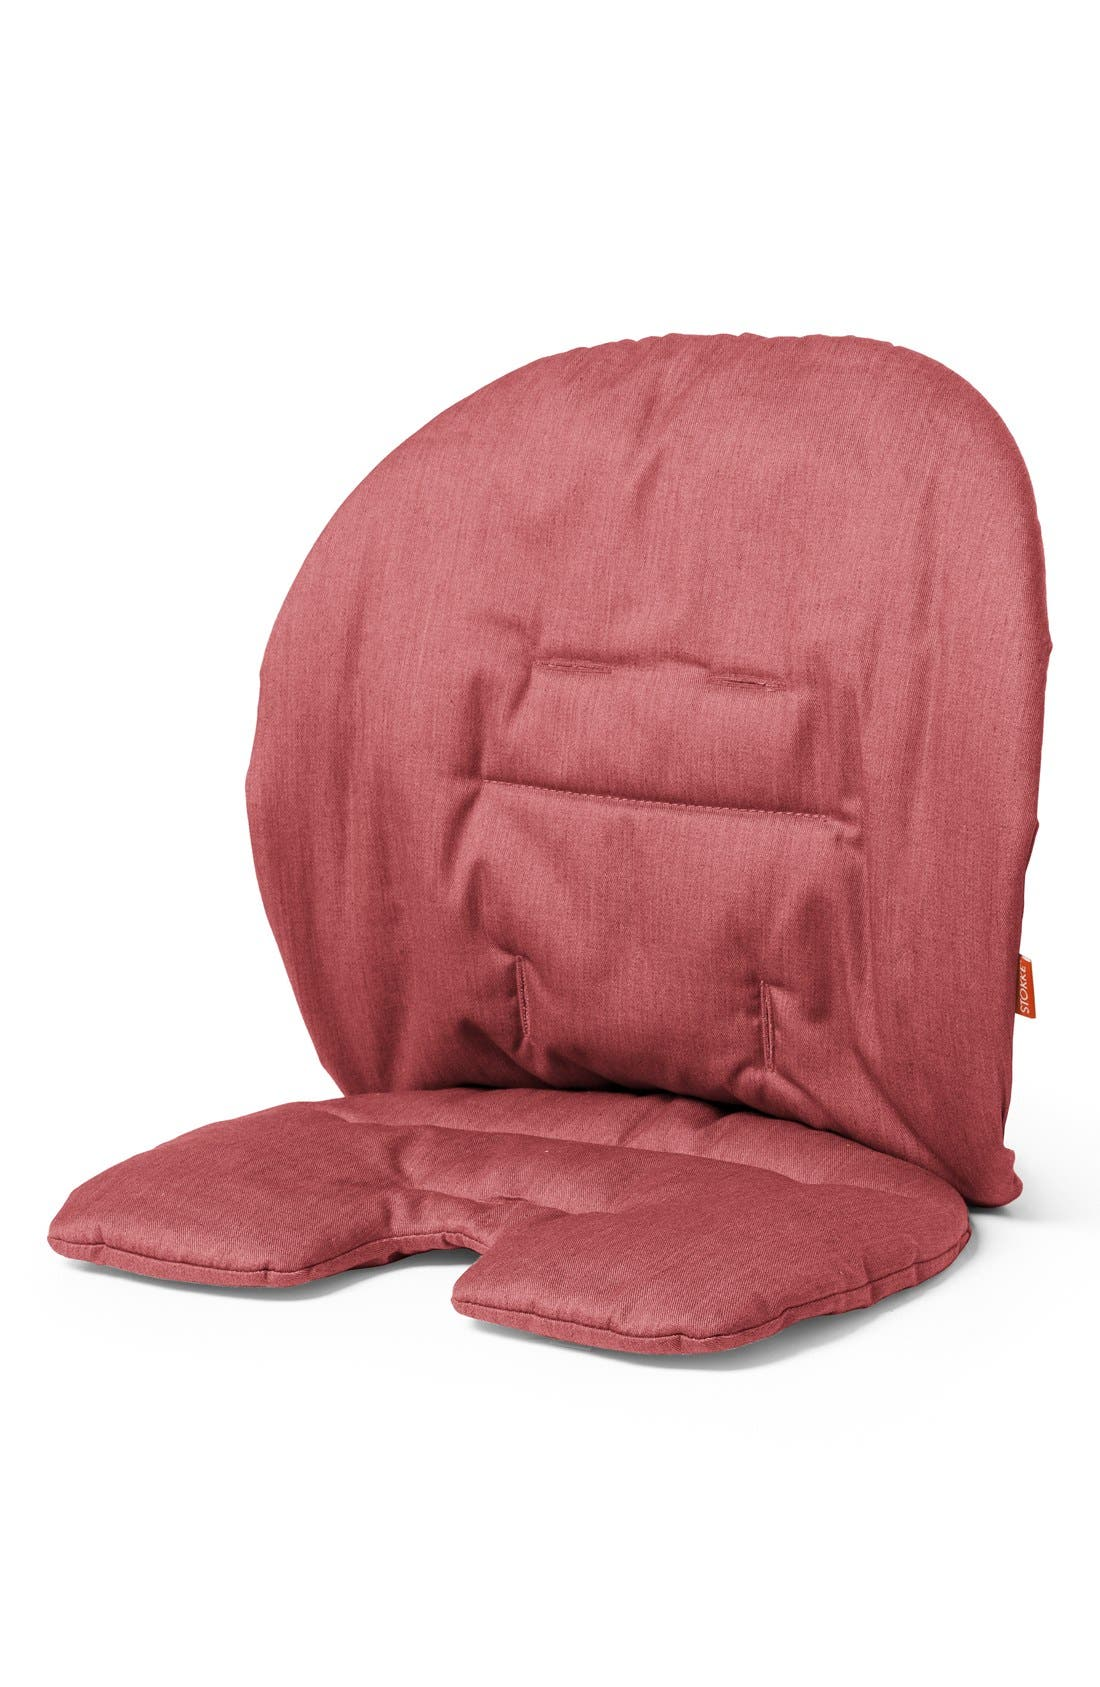 'Steps<sup>™</sup>' Seat Cushion,                         Main,                         color, Red